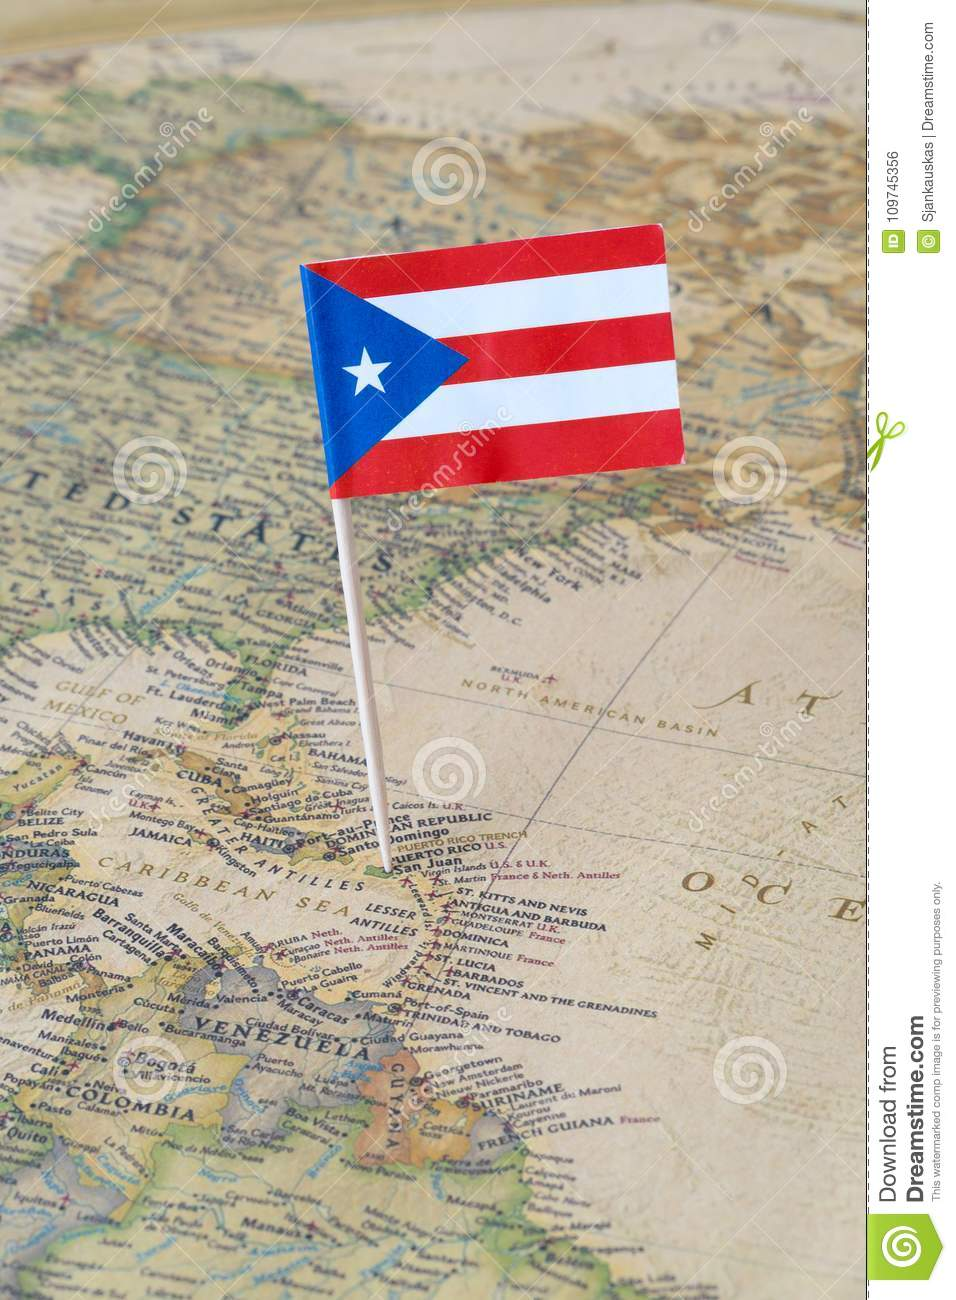 Puerto Rico Flag Pin On A World Map Stock Photo Image Of Atlas